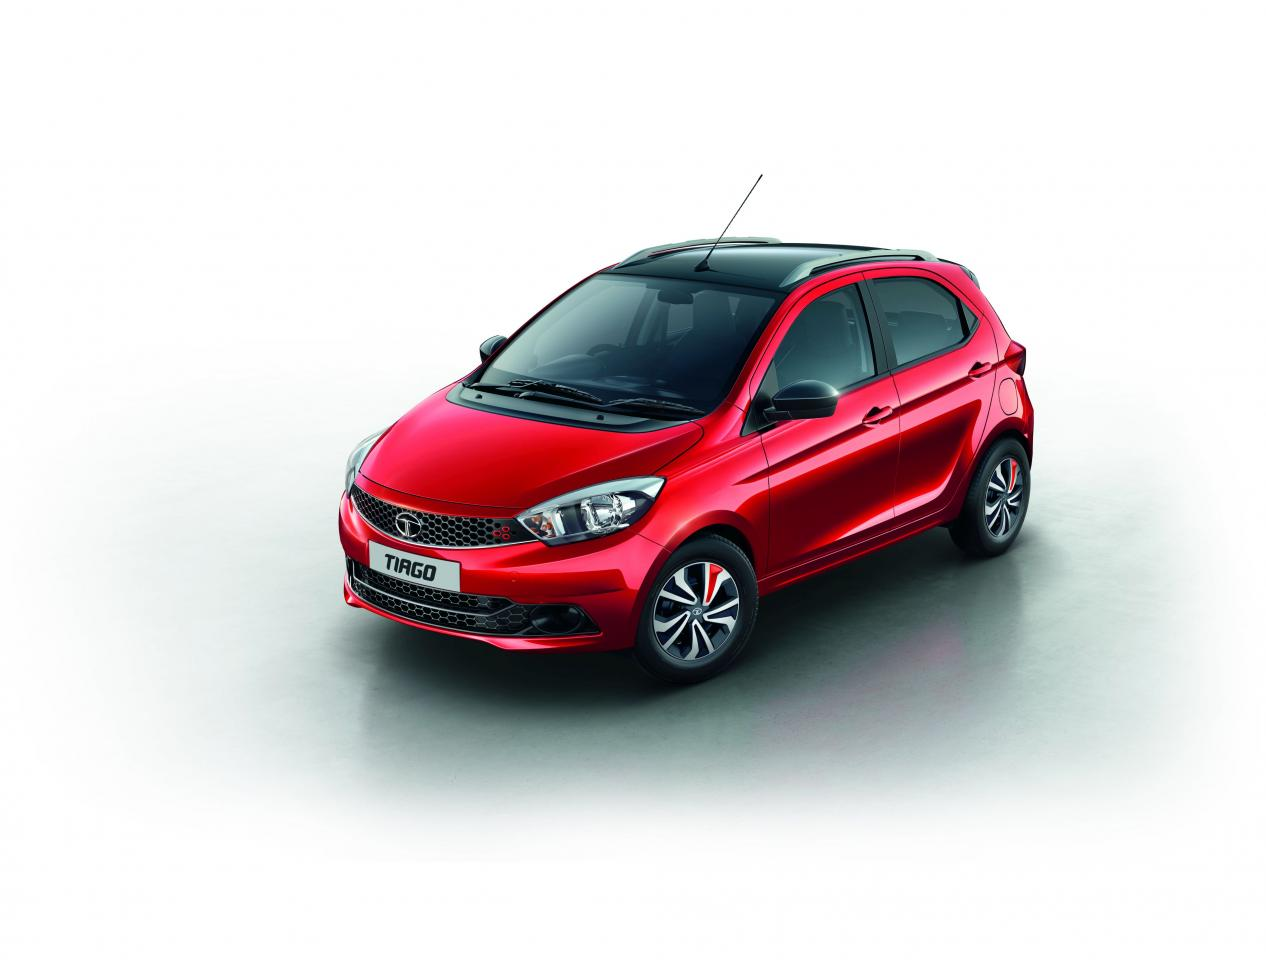 Tata Tiago Wizz (limited edition) launched in India